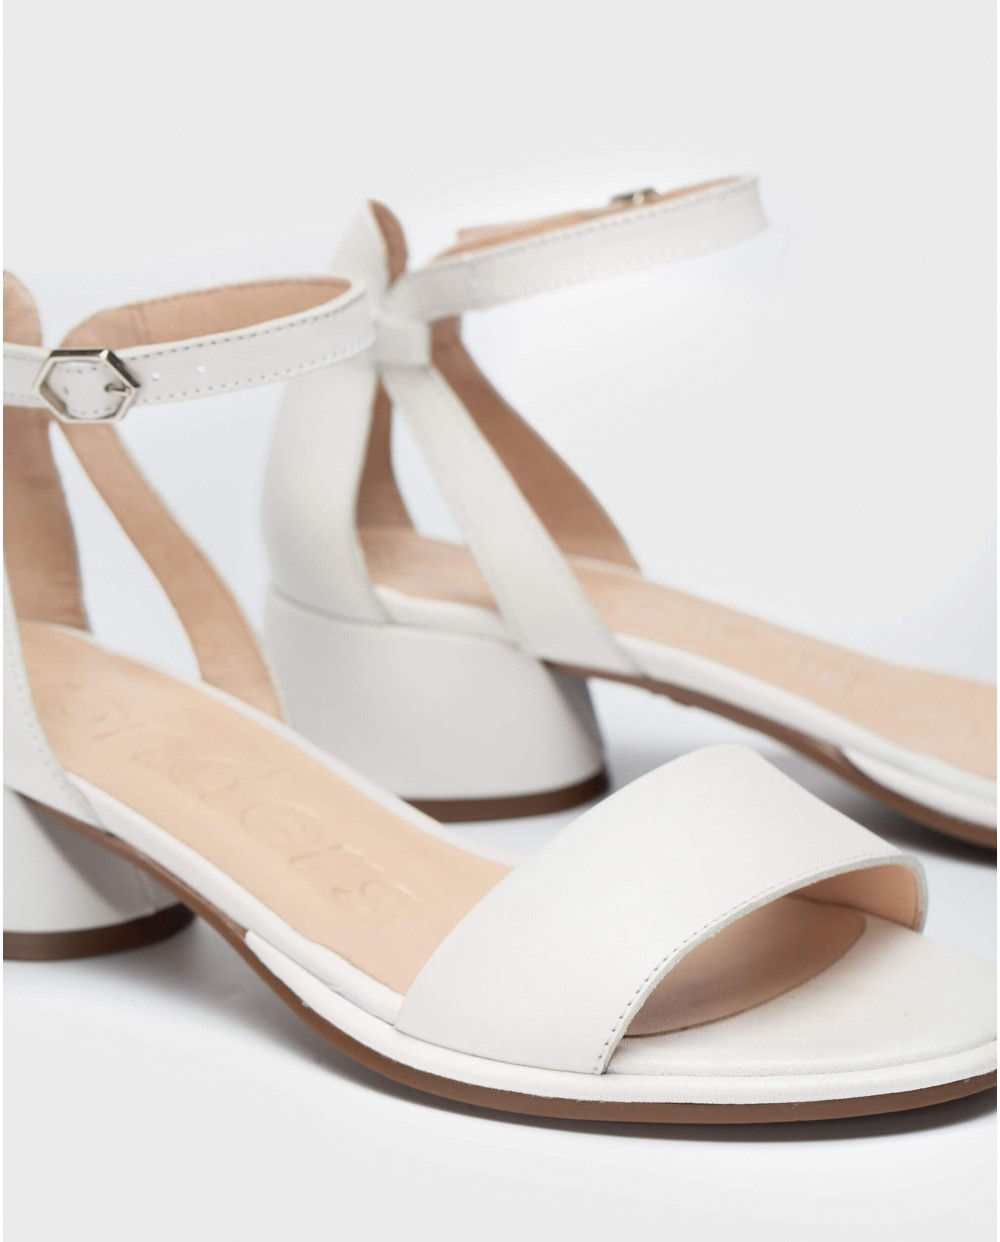 Wonders-Sandals-High heeled sandal with ankle strap